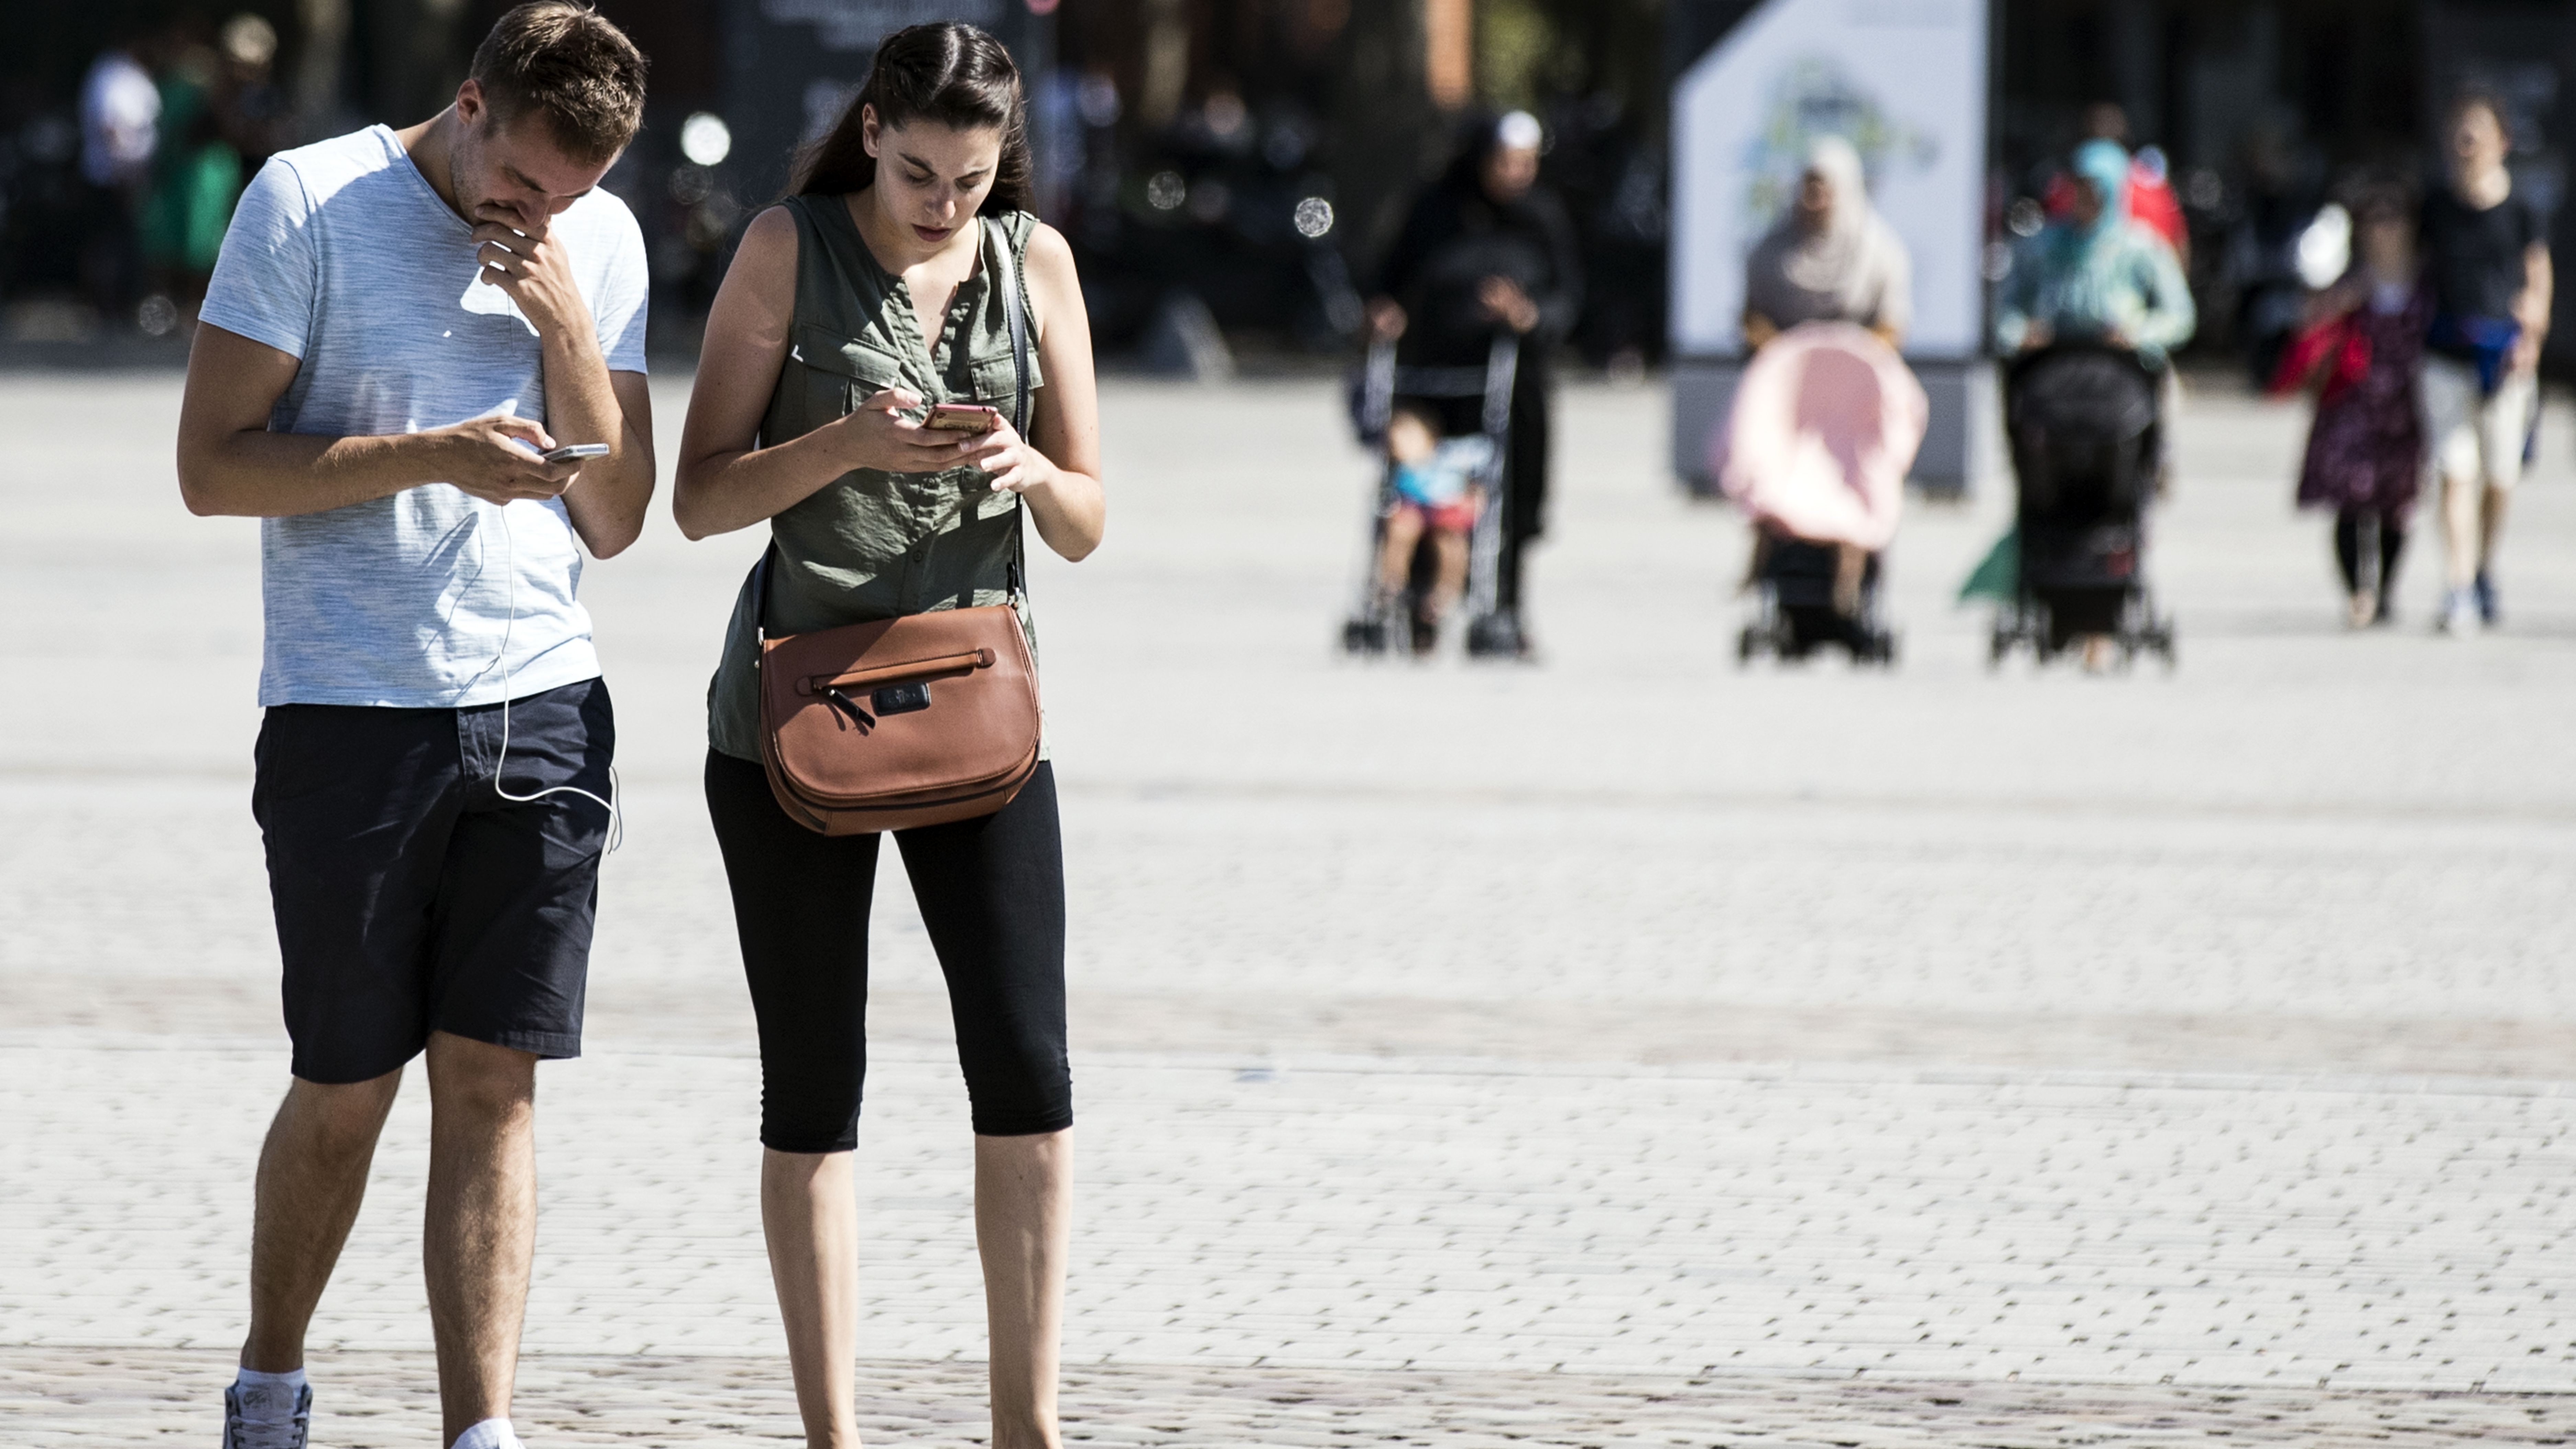 epa05487399 A couple searches for Pokemons on their phones at the Parc de la Villette where some rare creatures from the game are known to appear in Paris, France, 15 August 2016. Launched at the beginning of July by the US company Niantic, the mobile phone game 'Pokemon Go' has found a real success worldwide and already have generated more than 160 US million dollars.  EPA/ETIENNE LAURENT